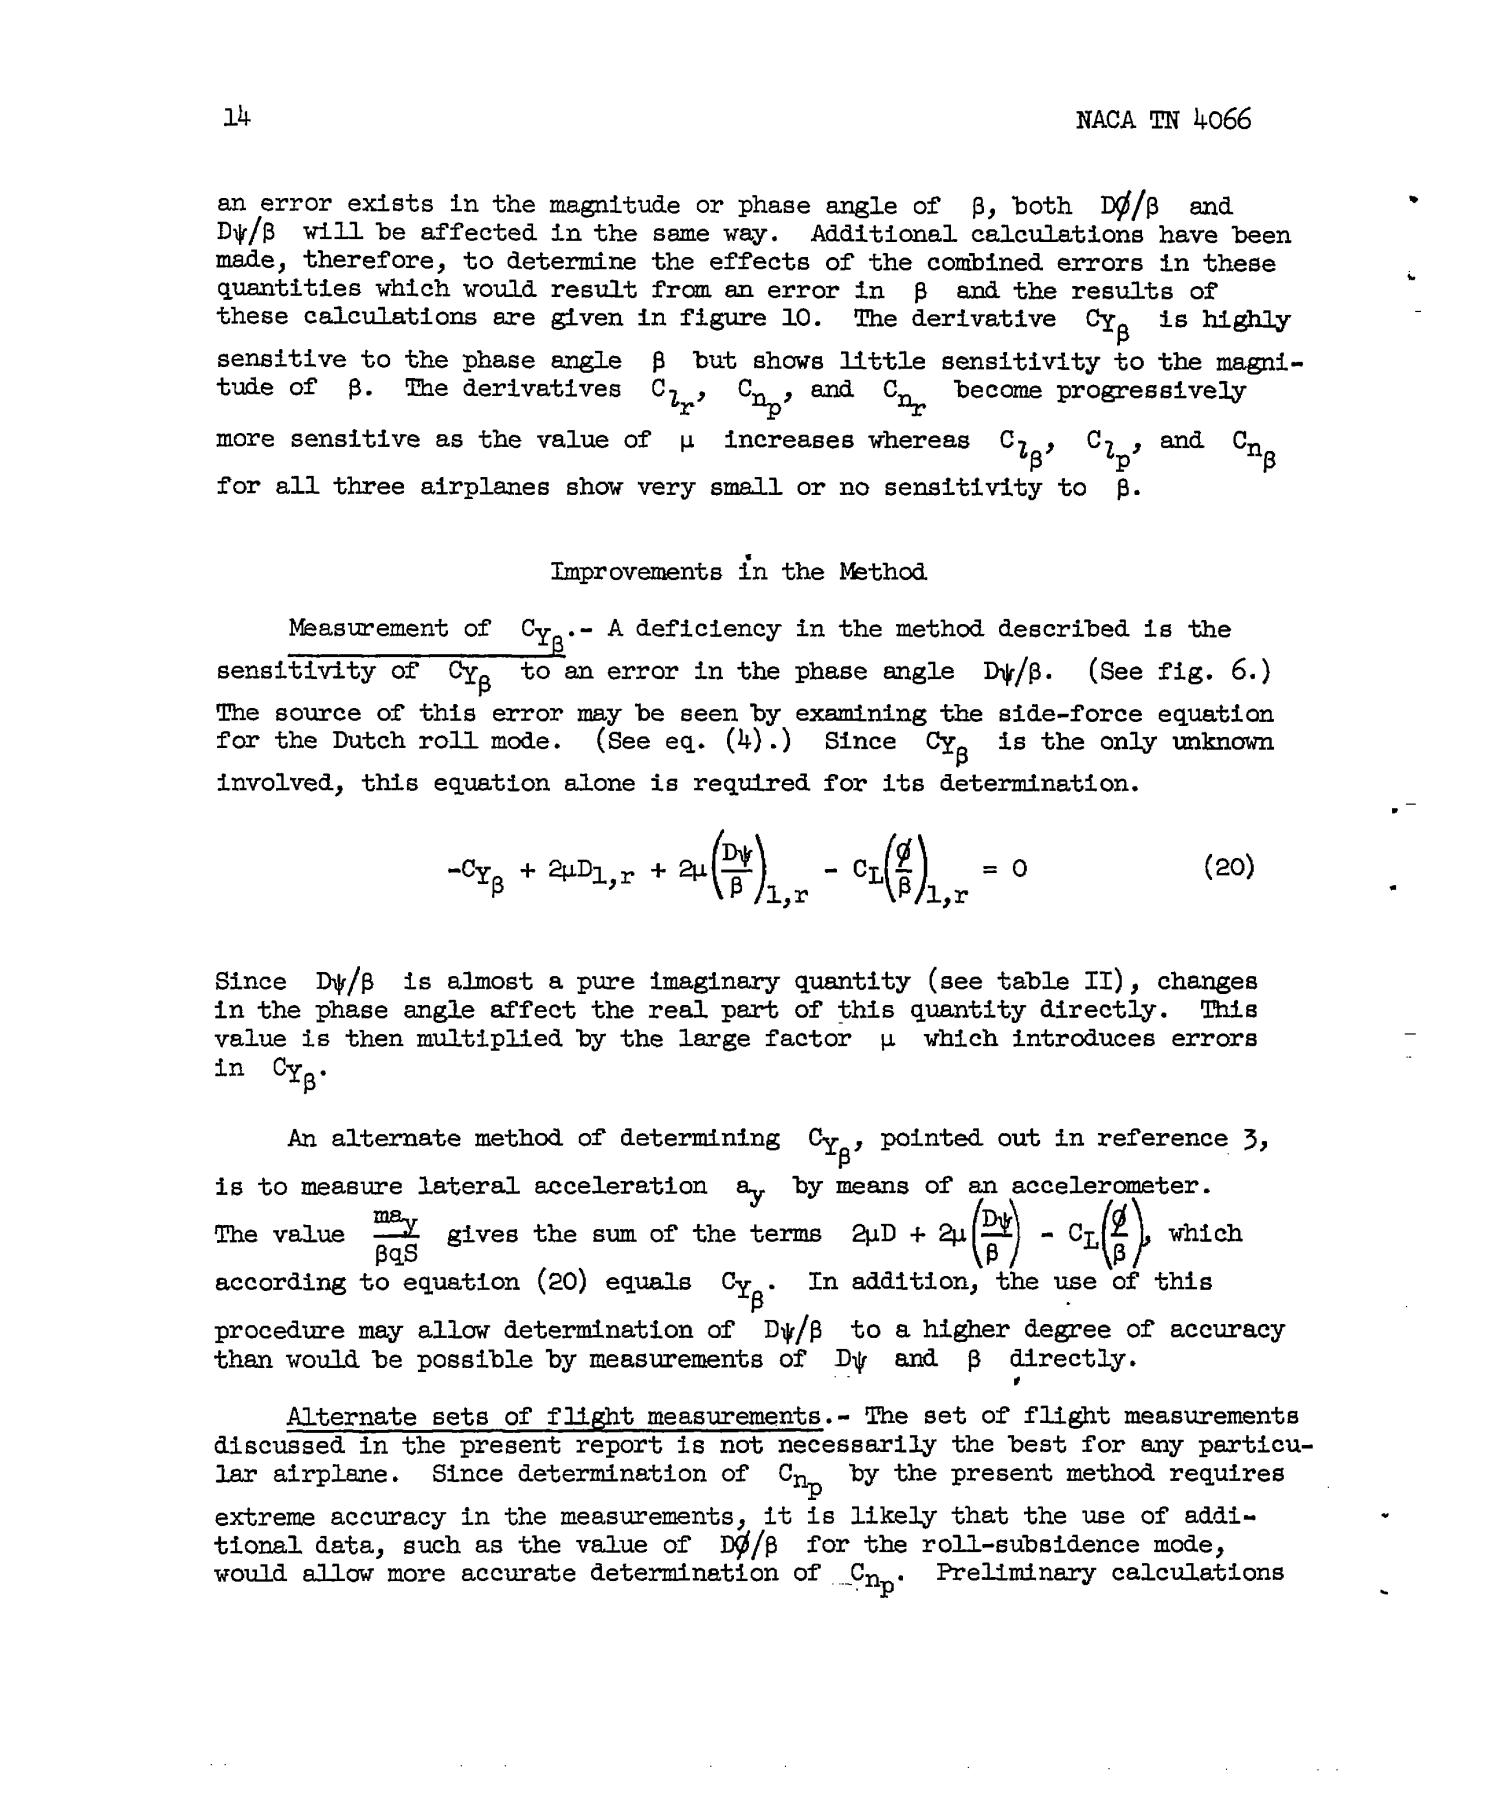 A Method Utilizing Data on the Spiral, Roll-Subsidence, and